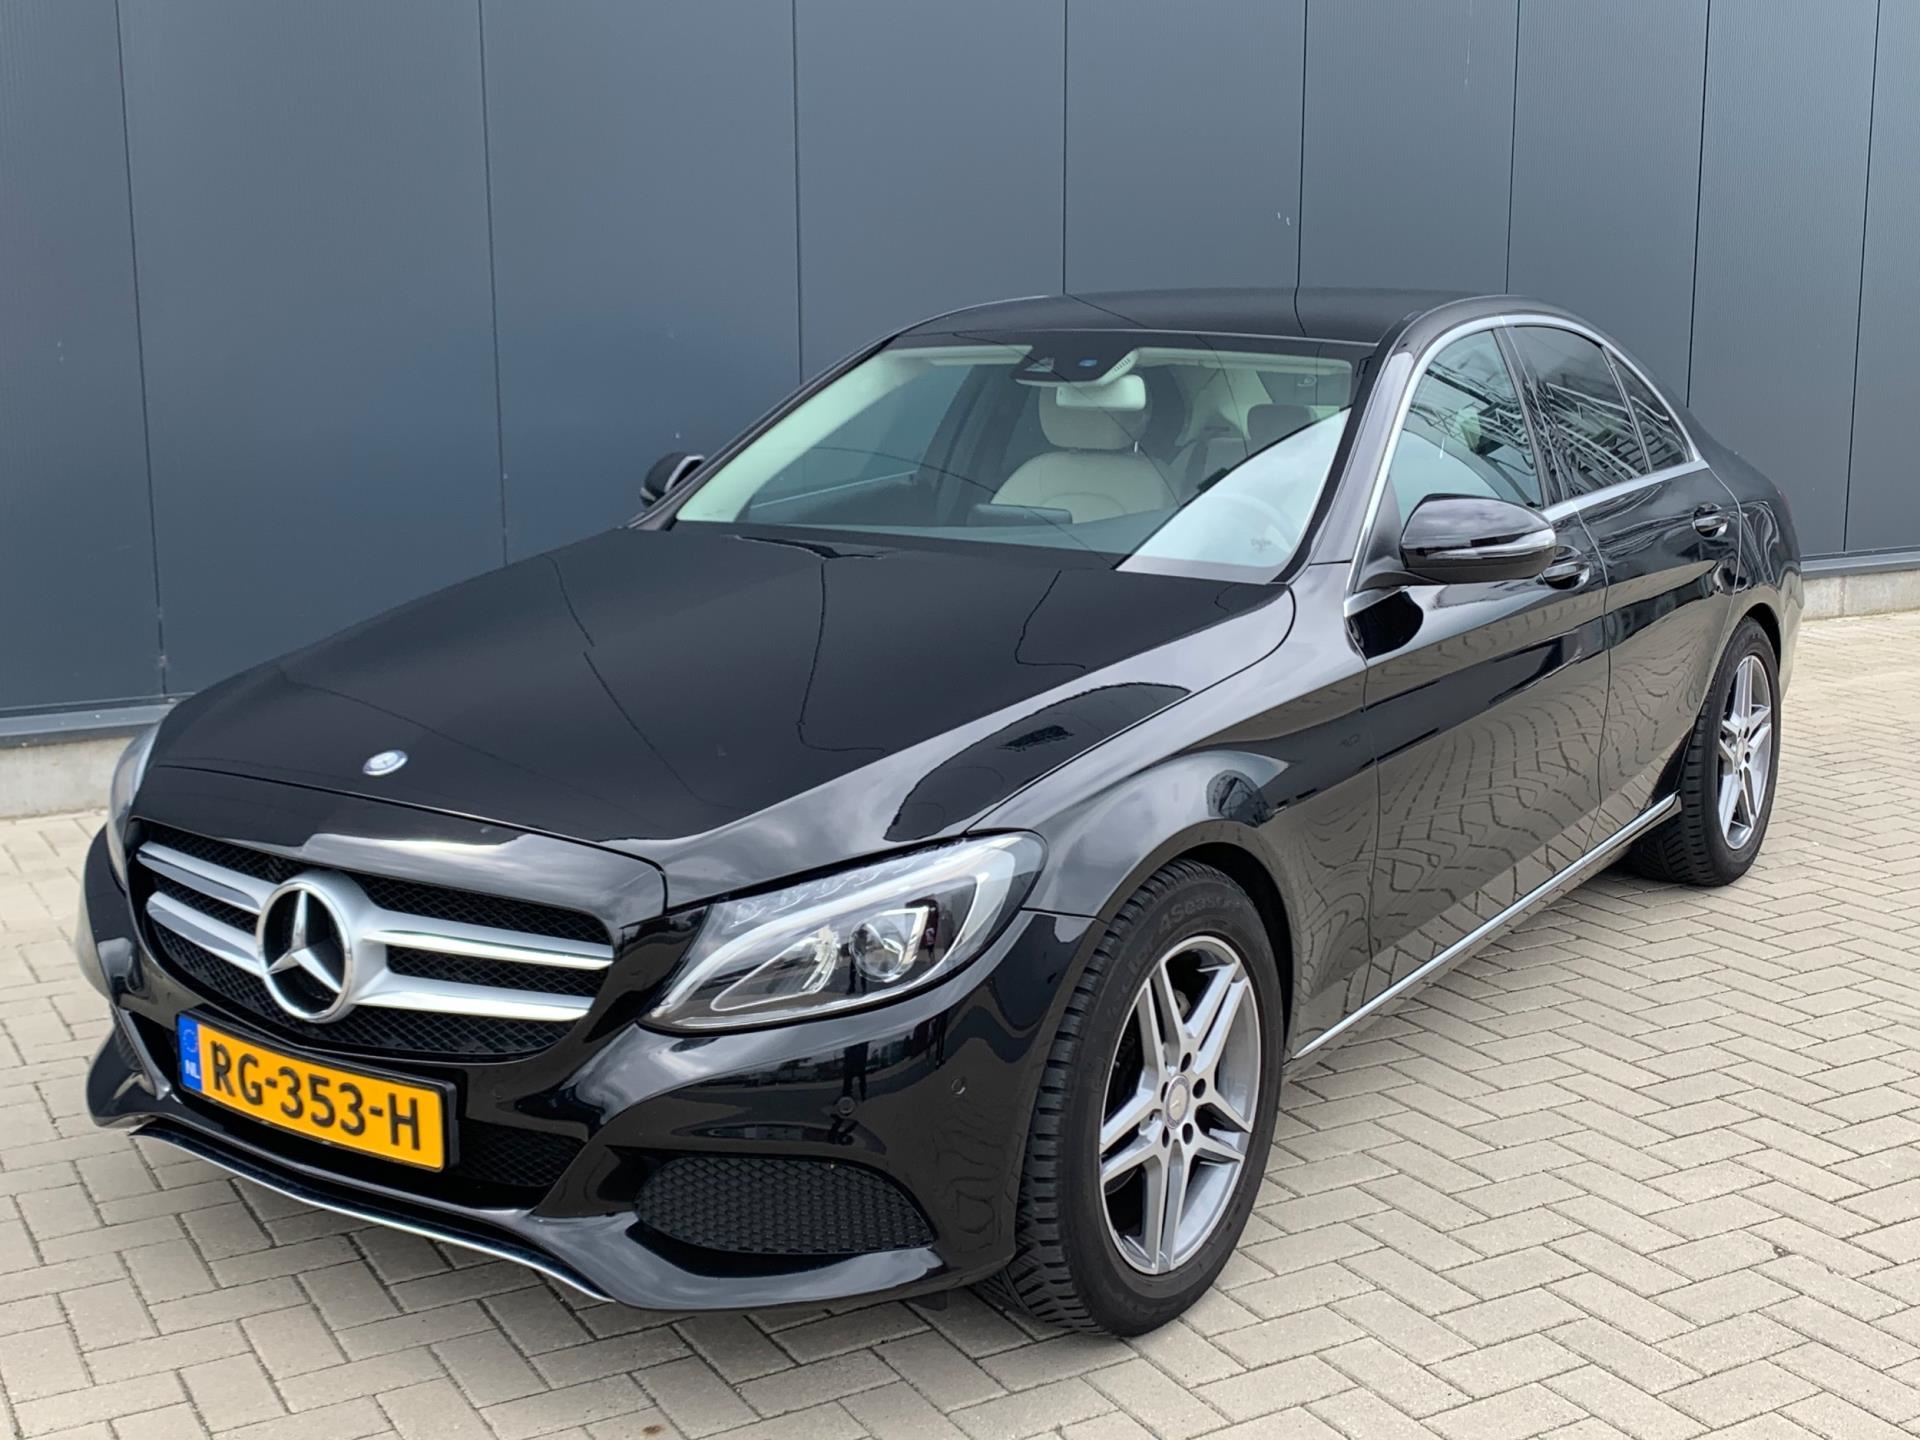 Mercedes-Benz C-klasse occasion - Dealer Outlet Cuijk b.v.